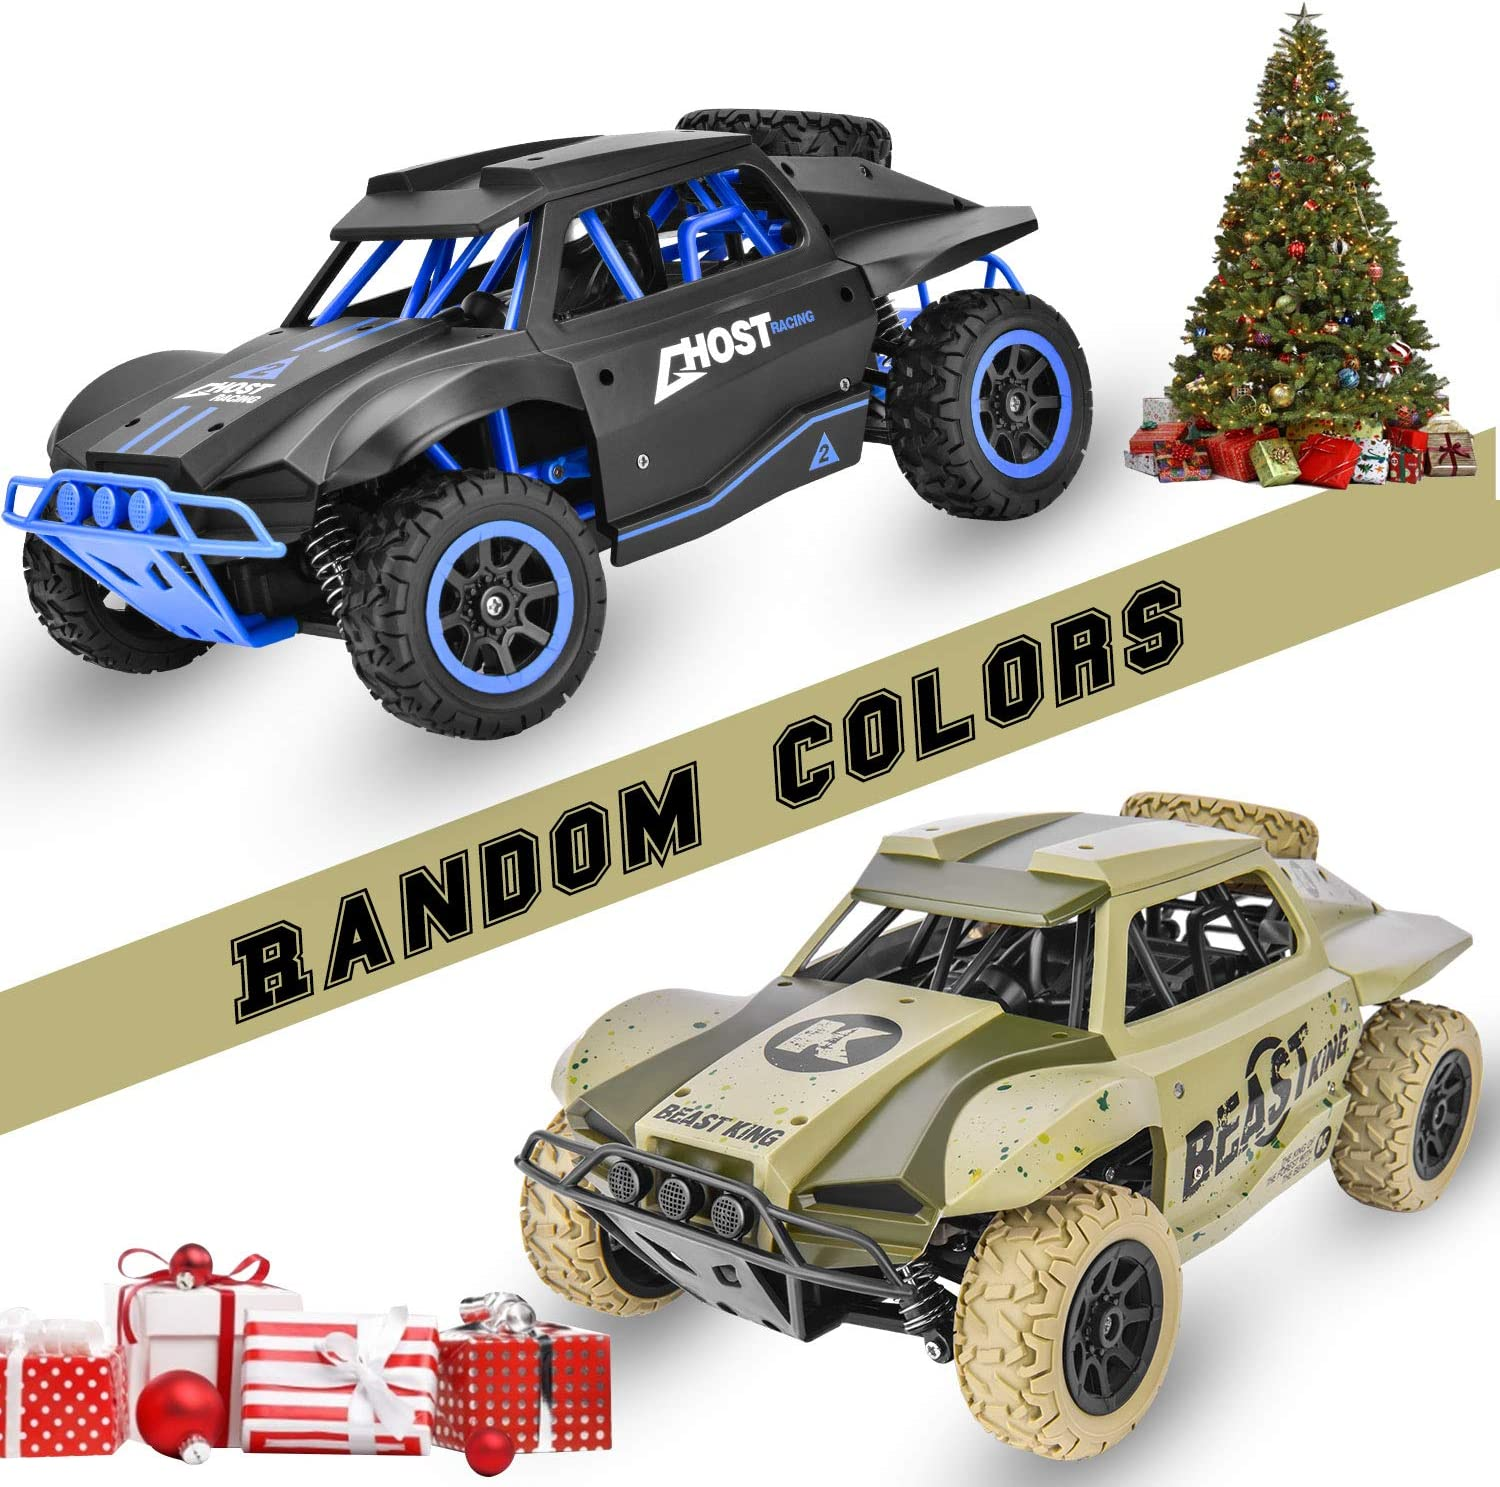 Rainbrace RC Racing Car Remote Control Car High Speed RC Car Rechargeable Radio Controlled Car RC Race Car for Boy Toys 5-16 Years Old Boys Kids Birthday Gift